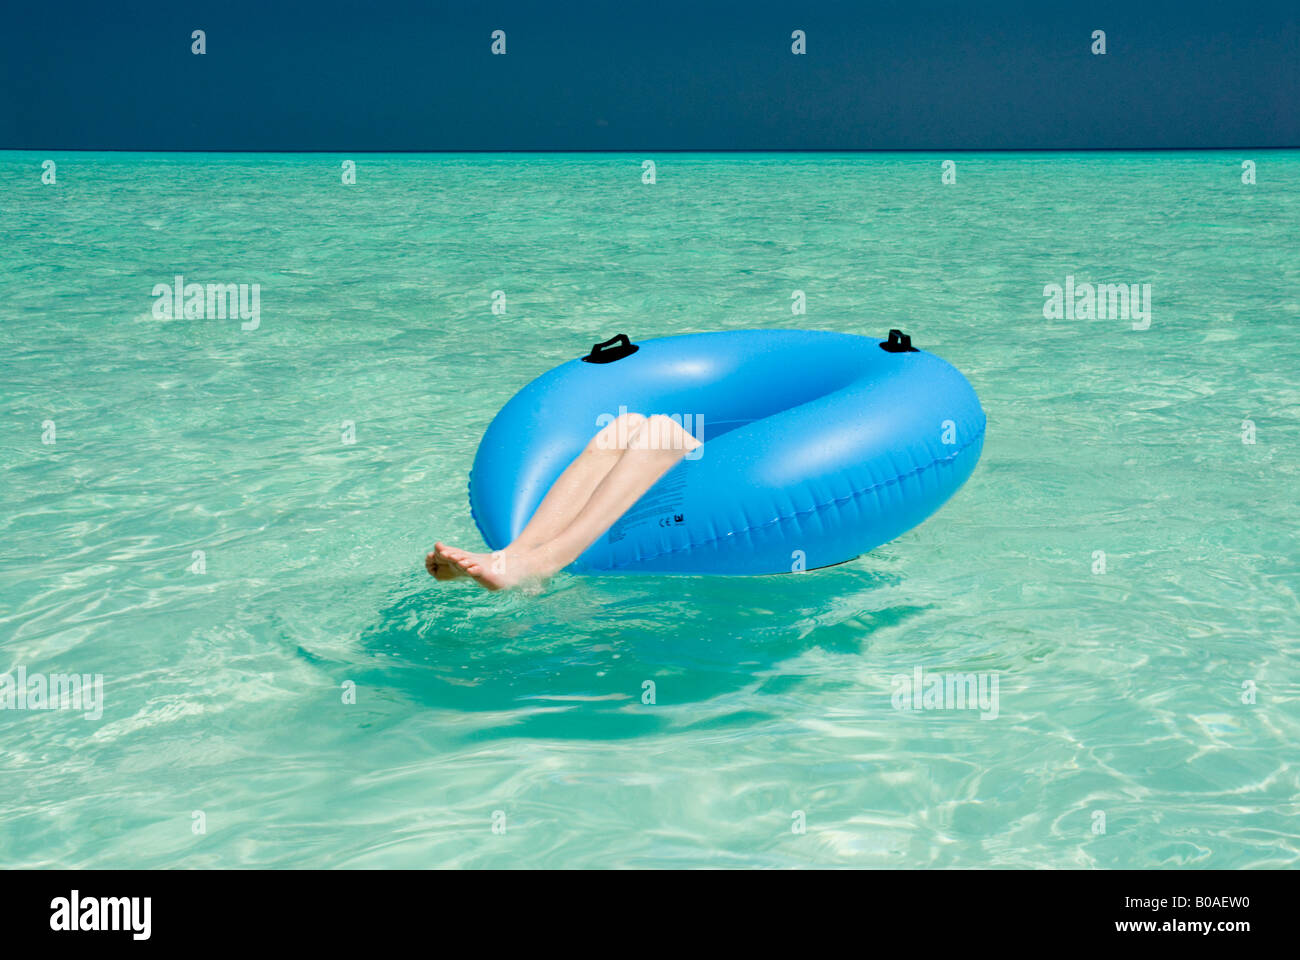 Teenage boy one person lying in blue rubber ring relaxed chilled out blue lagoon blue sky Oscar Hanna MR - Stock Image